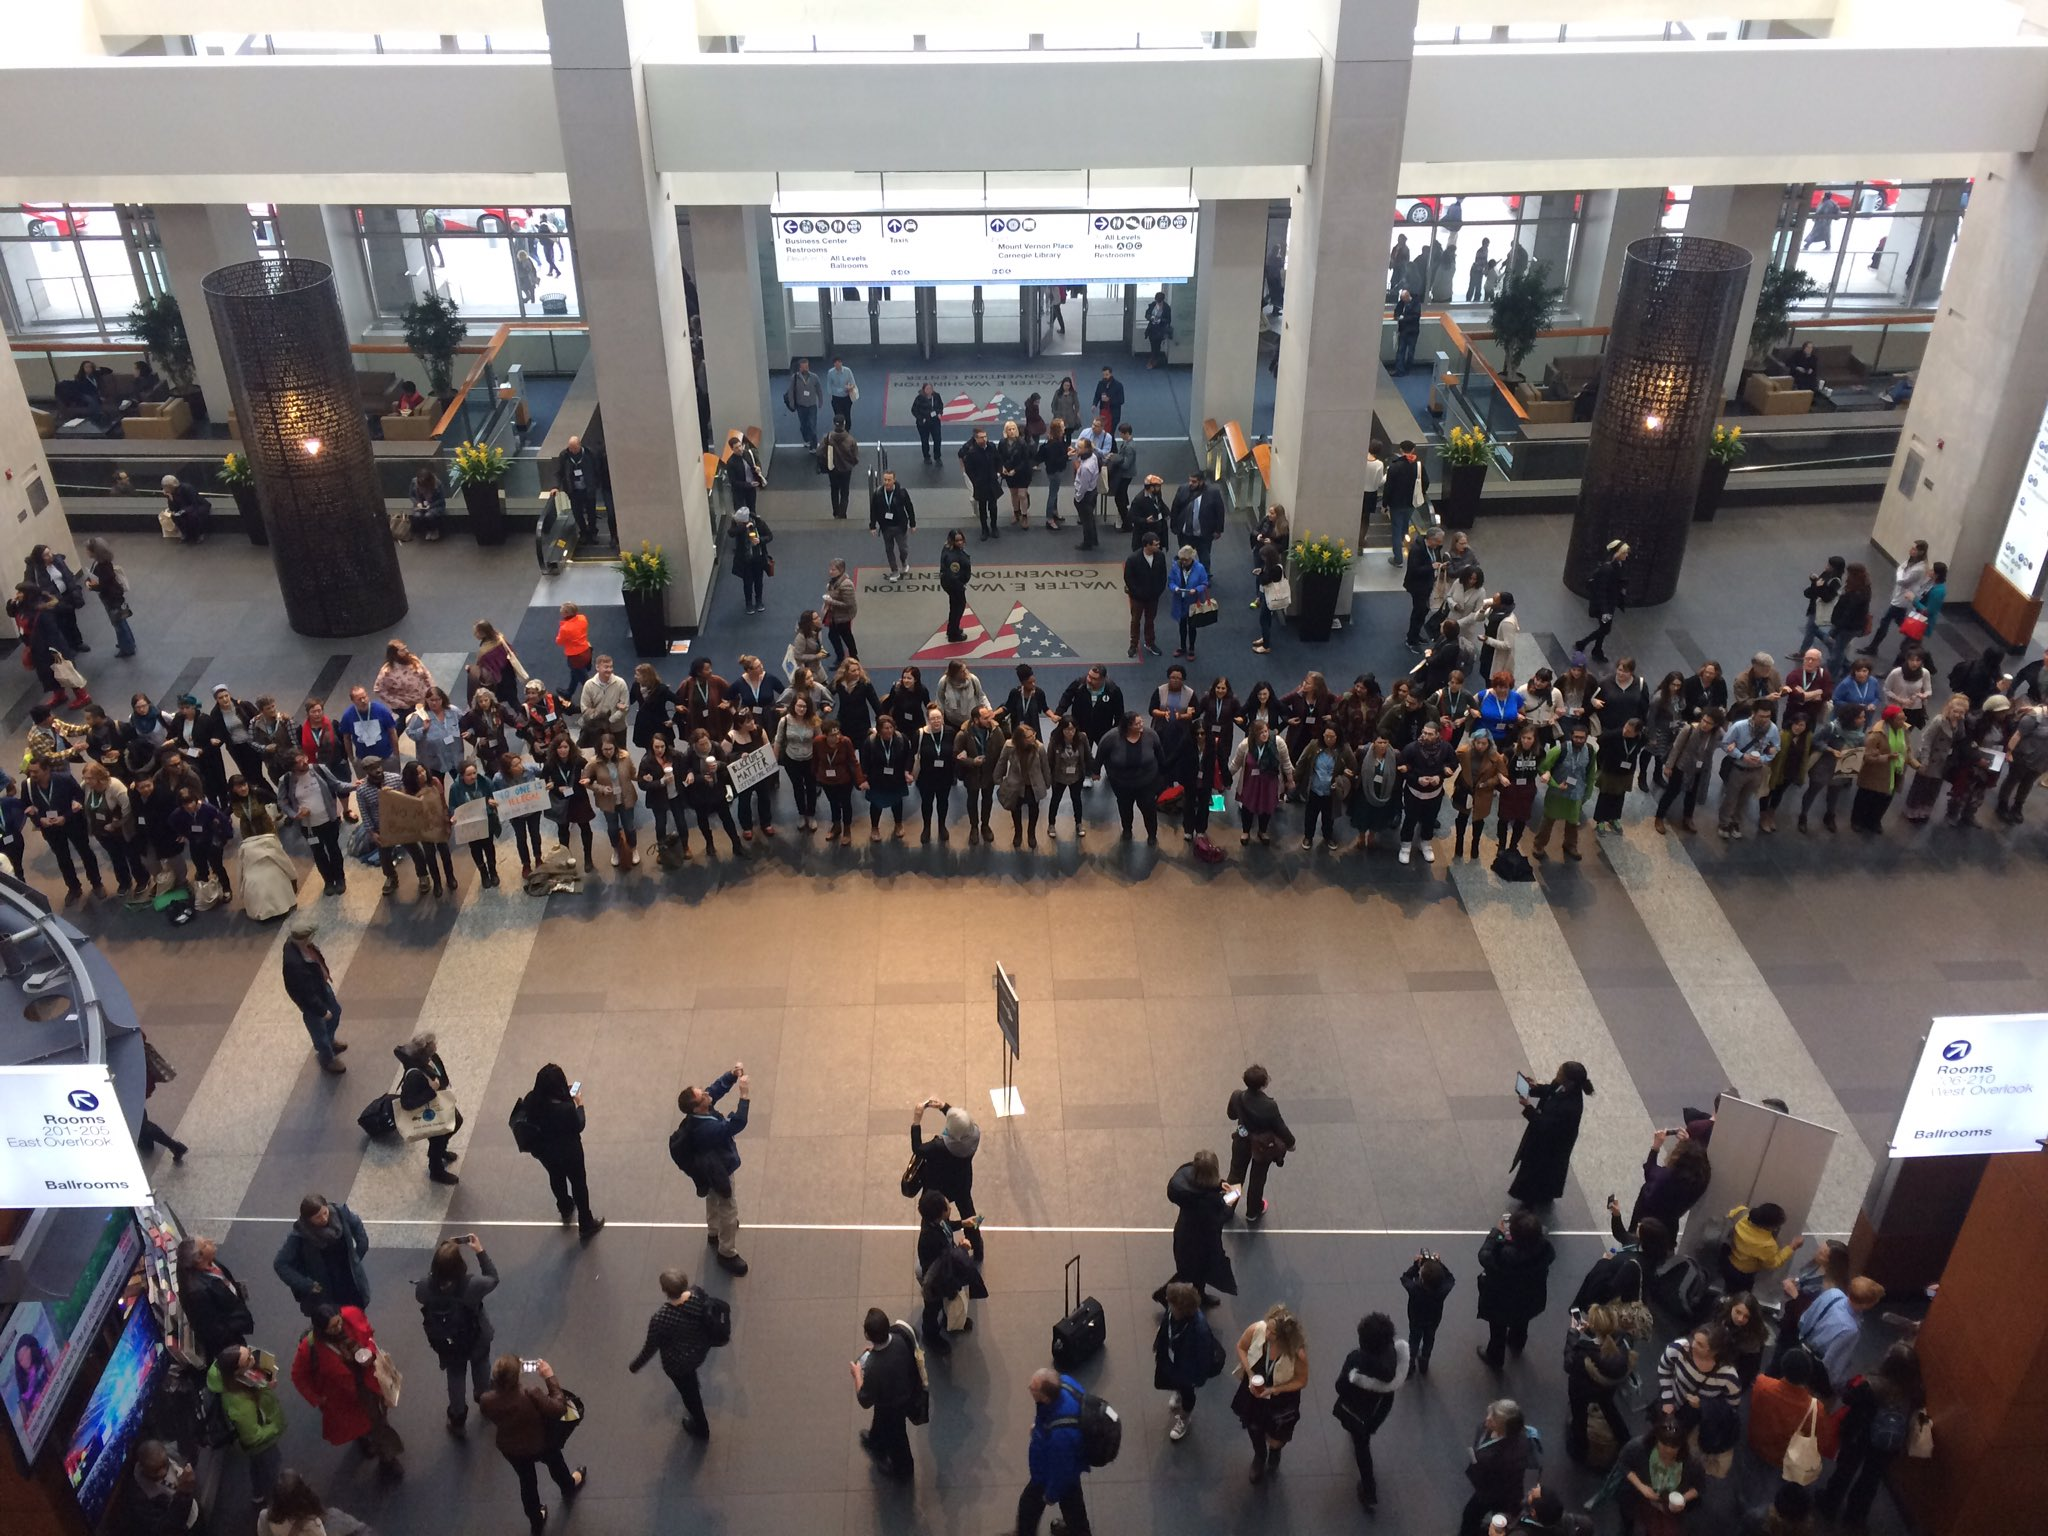 'No process, no peace.' This is happening at #AWP17 right now. https://t.co/x3UOFUNmtd